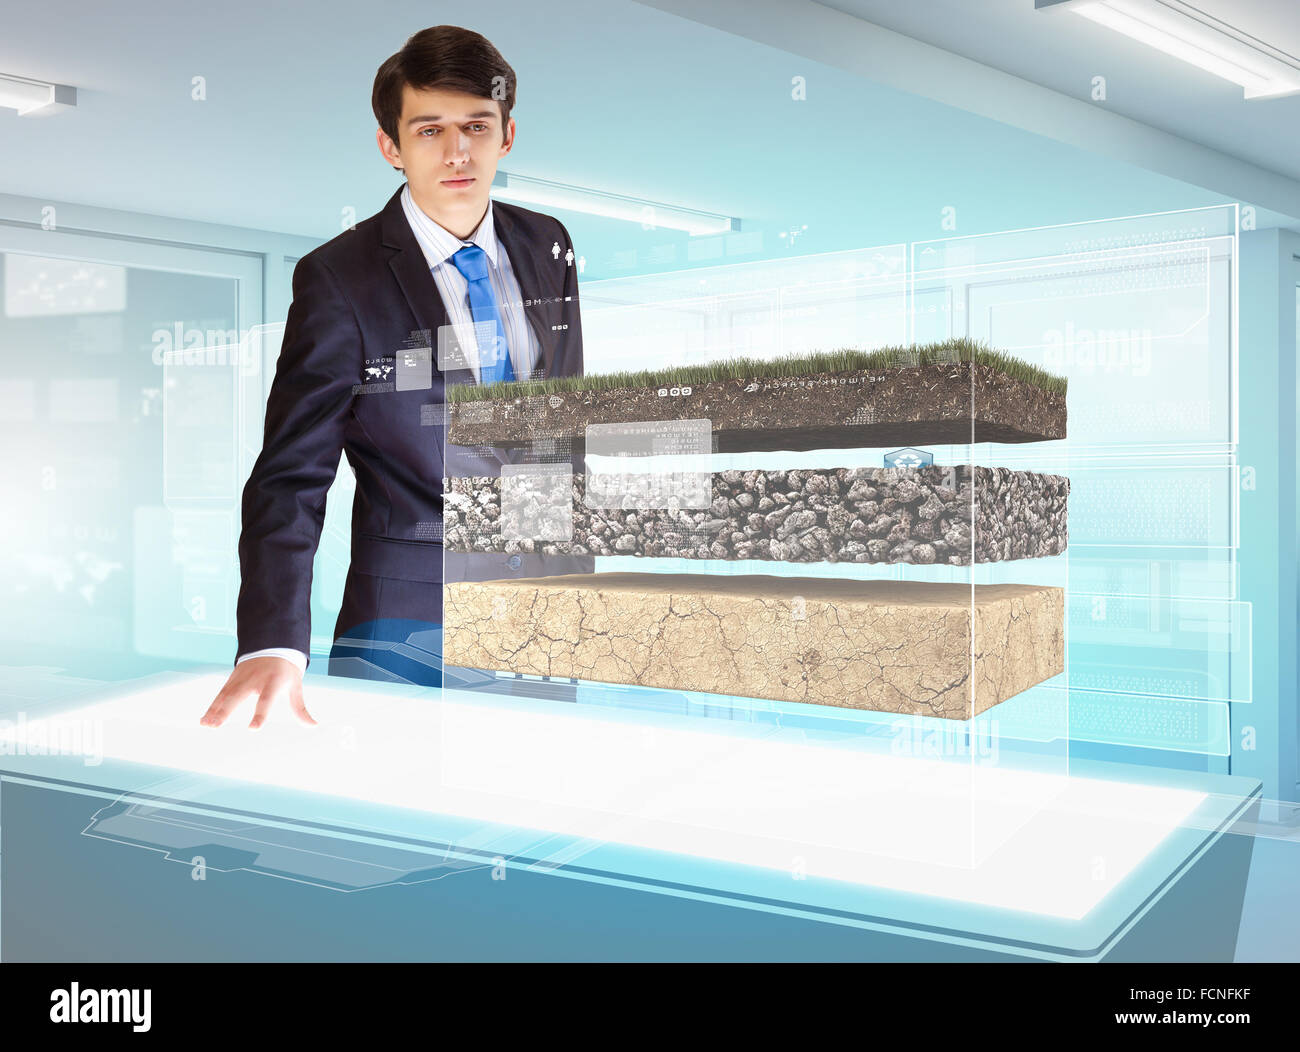 Image of young businessman looking at high-tech picture of topsoil - Stock Image